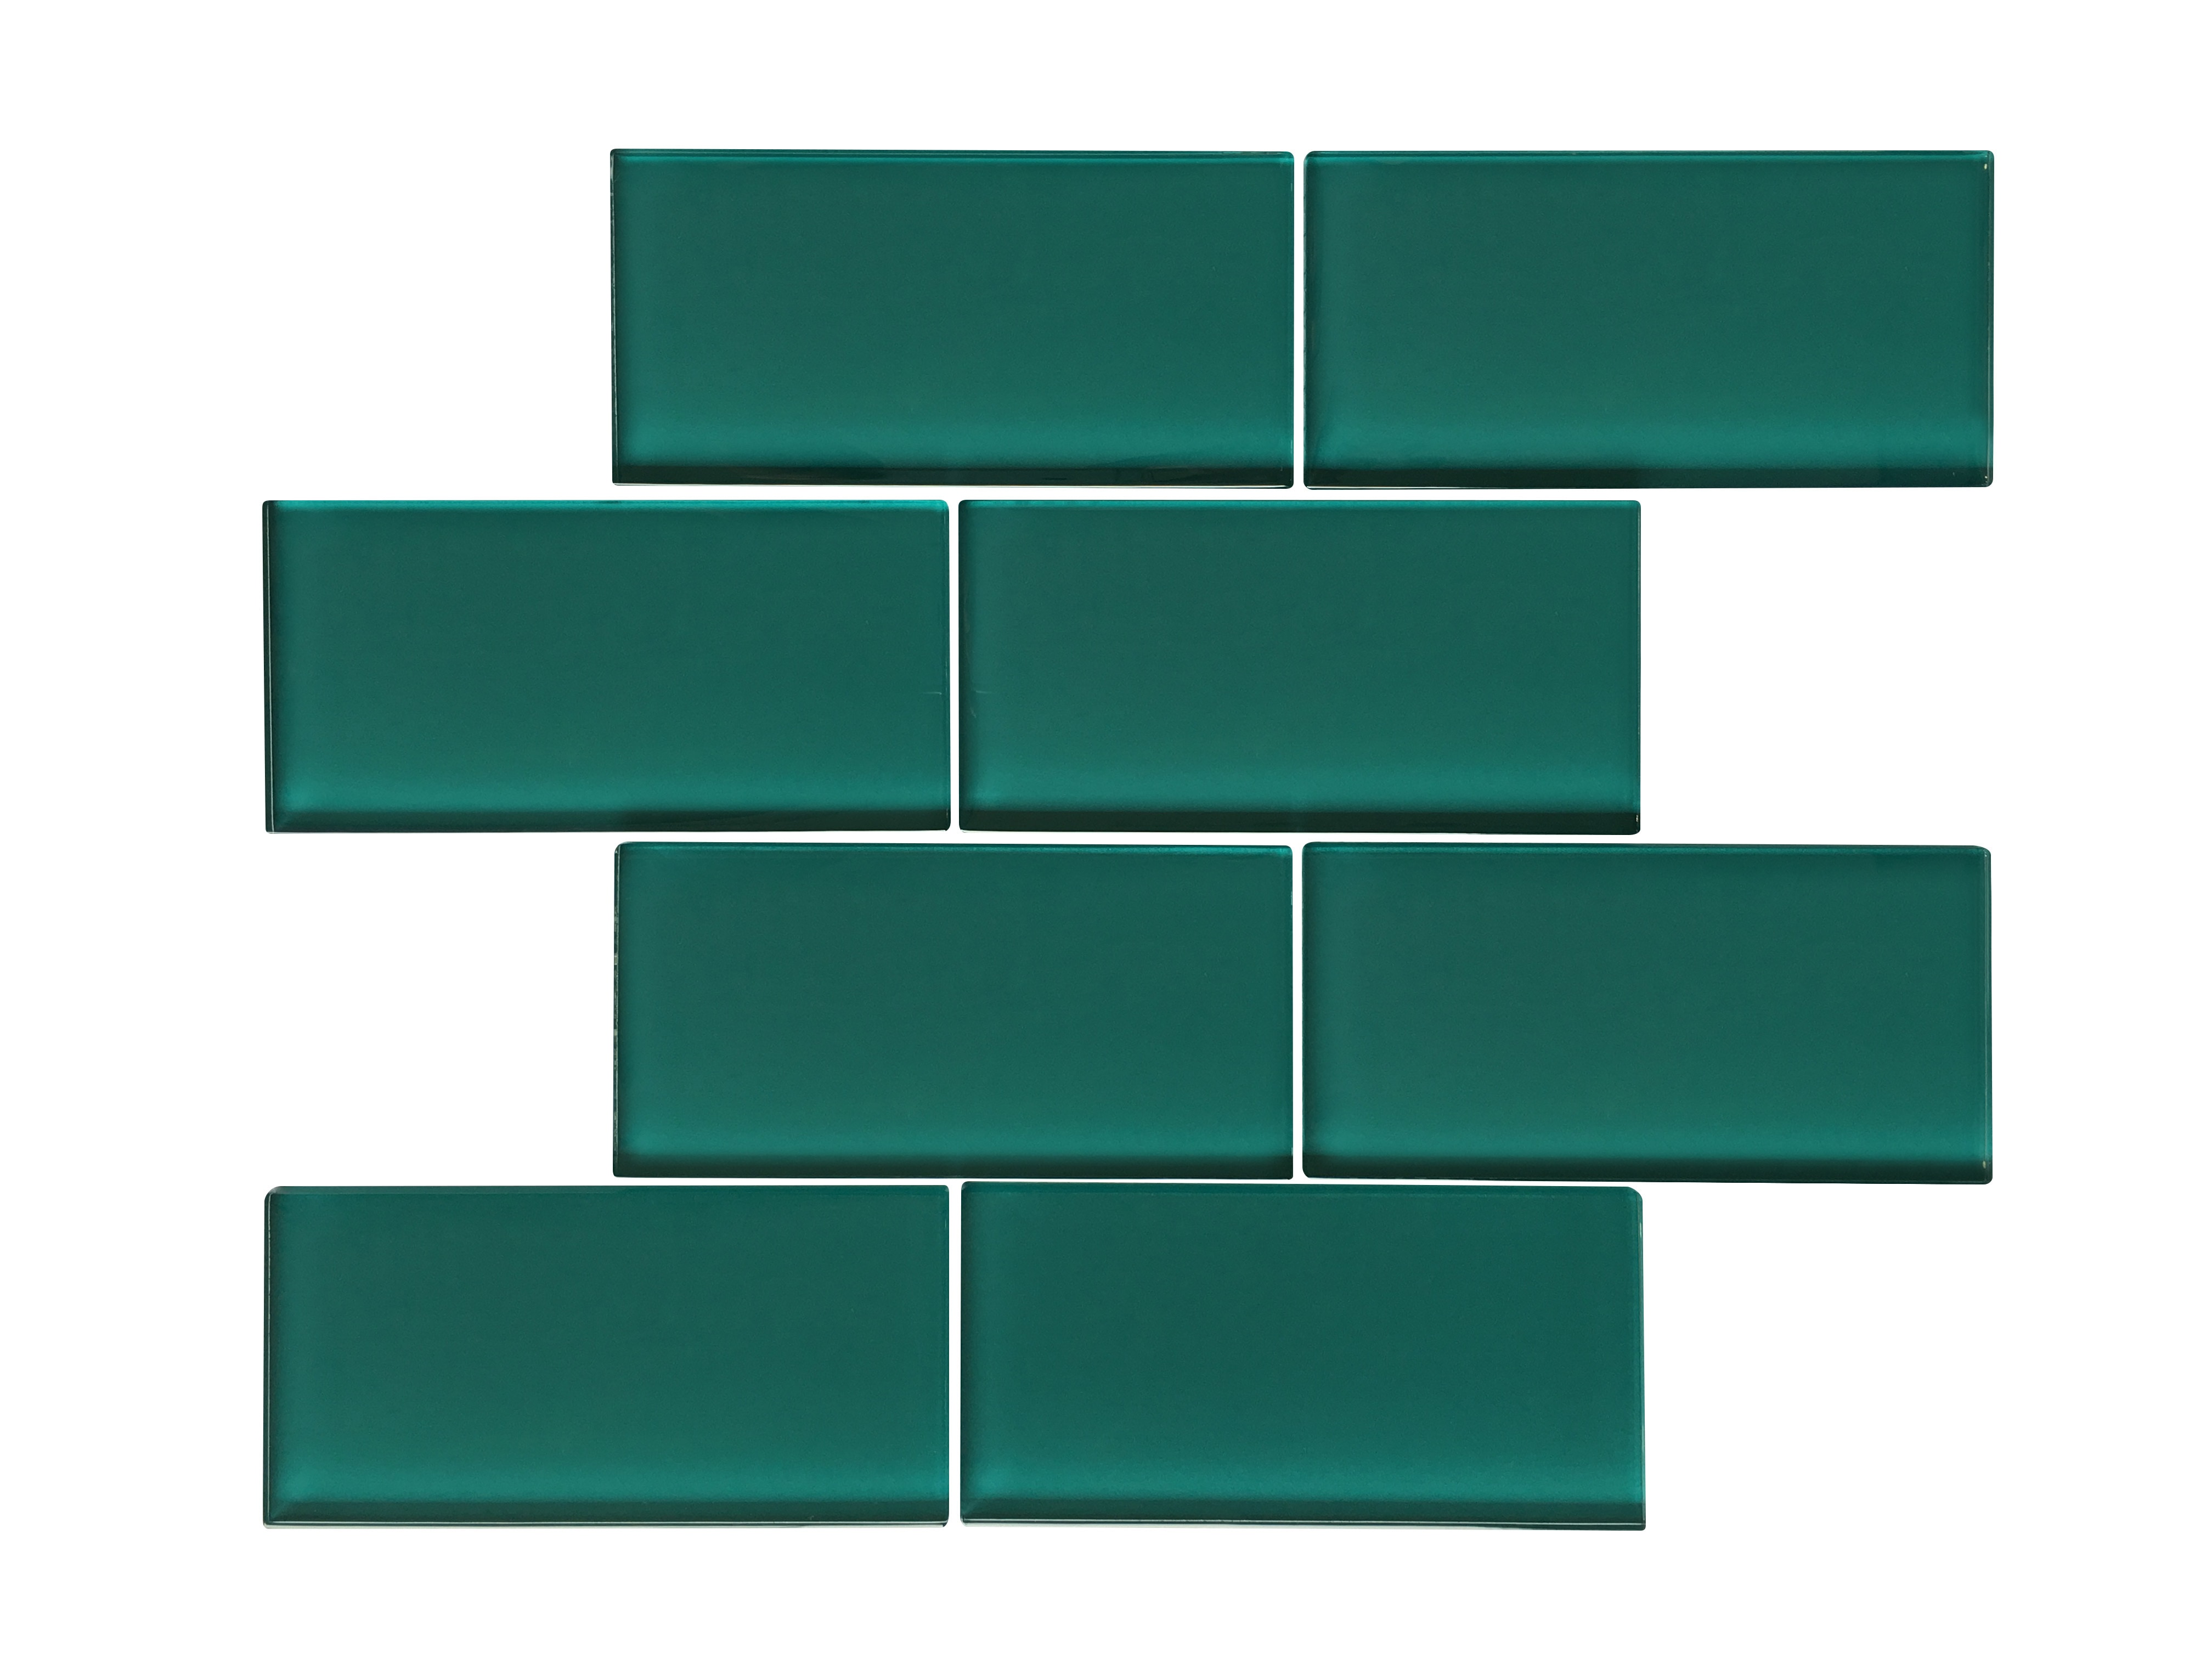 """Glass Mosaic / 16 x 12 x 0.31 inches / Glossy Large 3"""" X 6"""" Glass Subway Mosaic Tile In Dark Teal 0"""